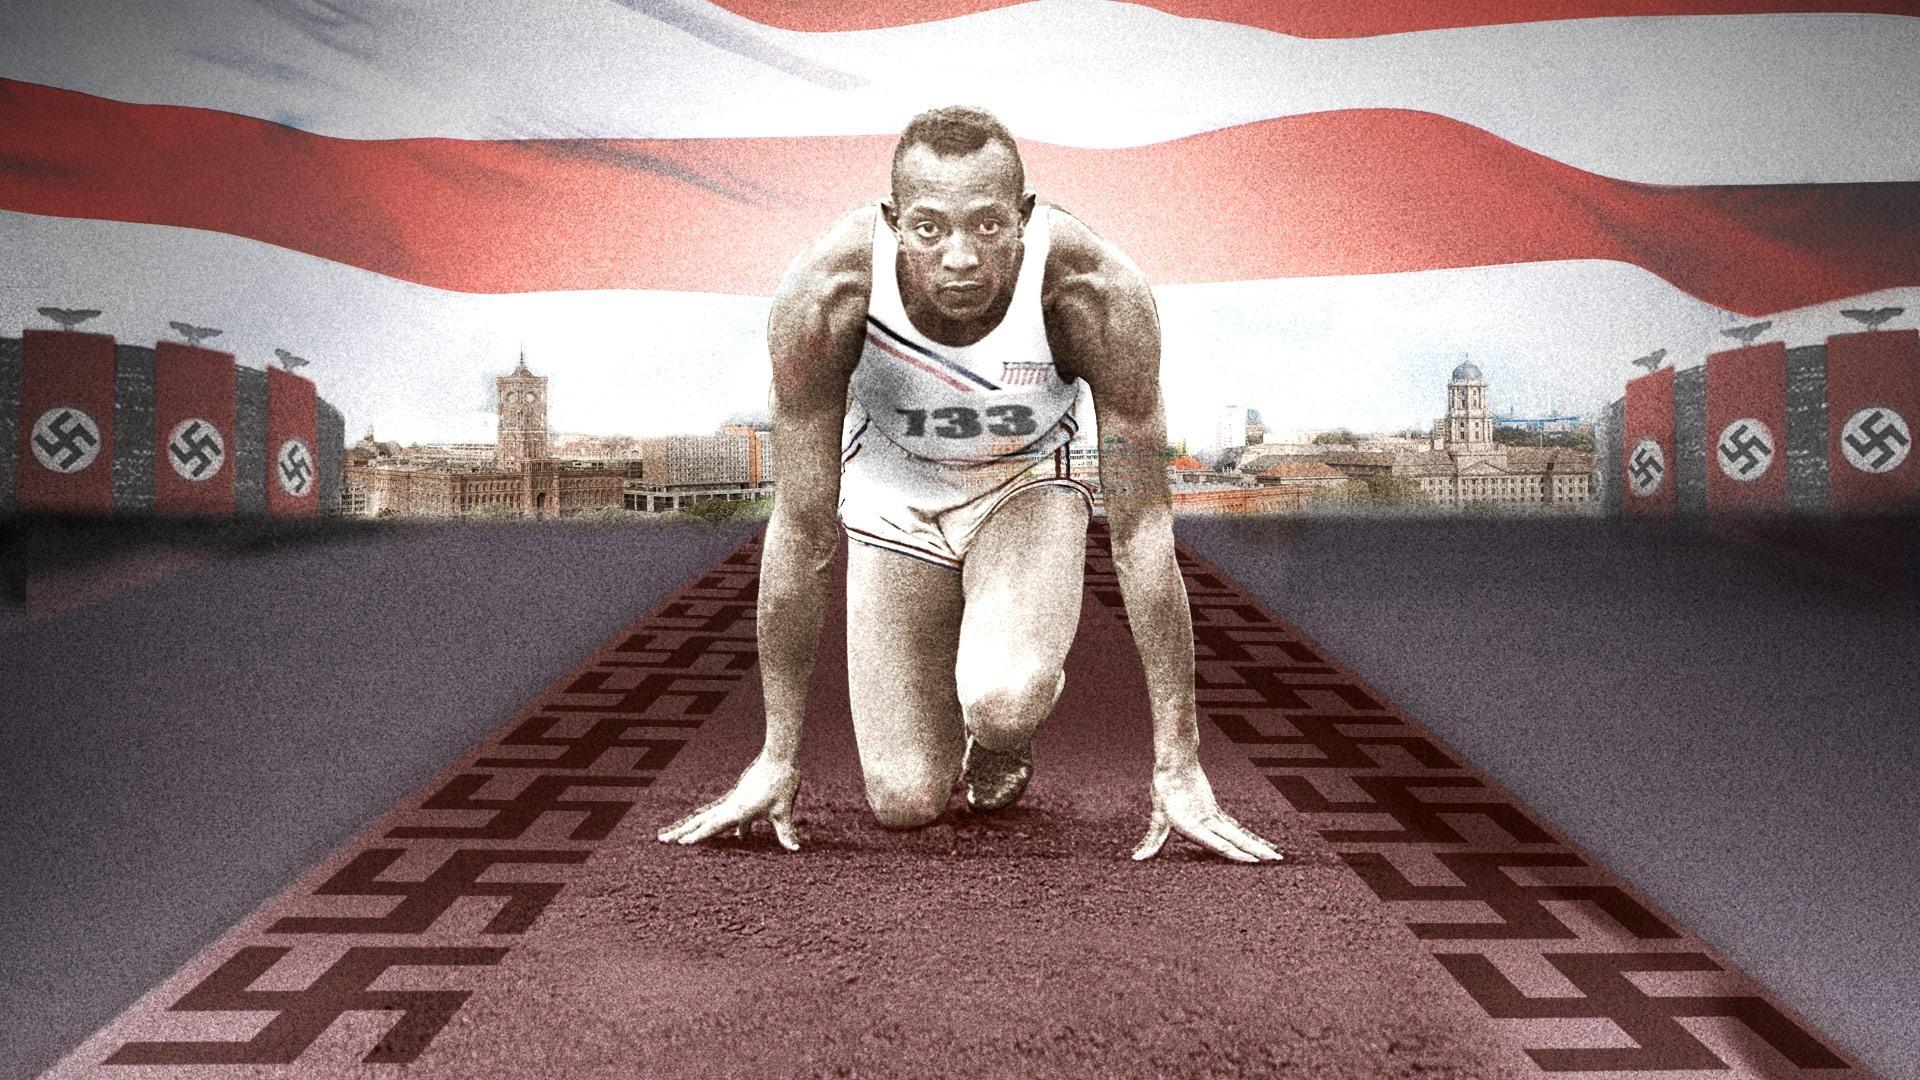 jesse owens pictures in color chanel jesse owens inspires me color pictures owens jesse in